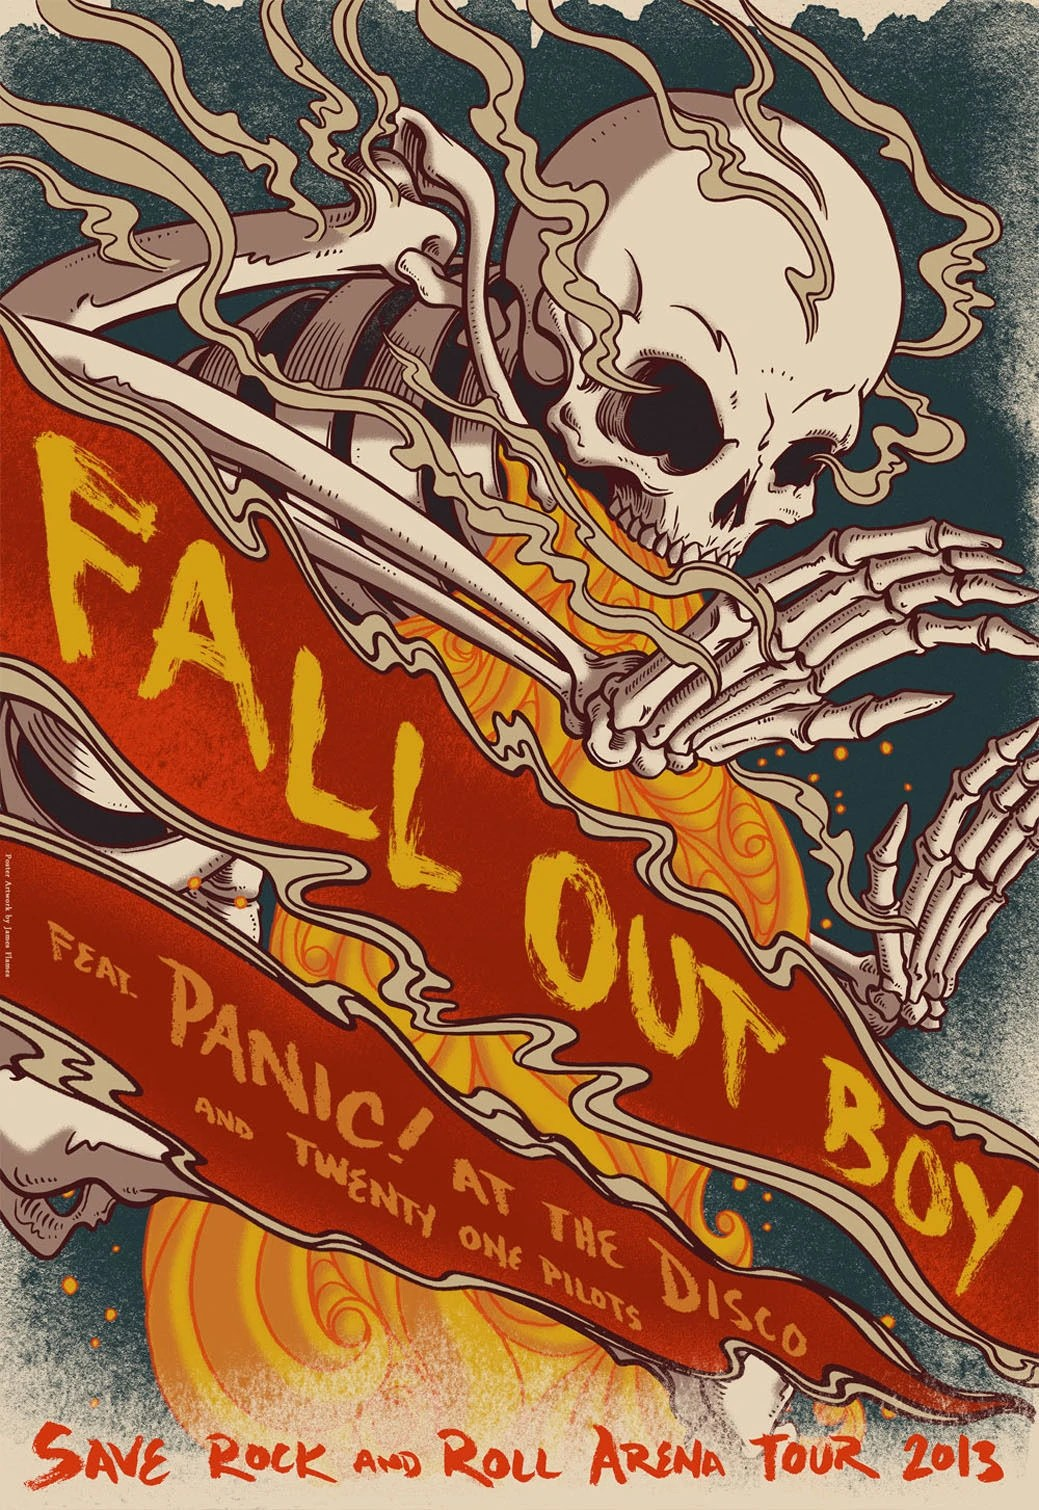 Mania Album Cover Fall Out Boy Wallpaper The Save Rock And Roll Tour Twenty One Pilots Wiki